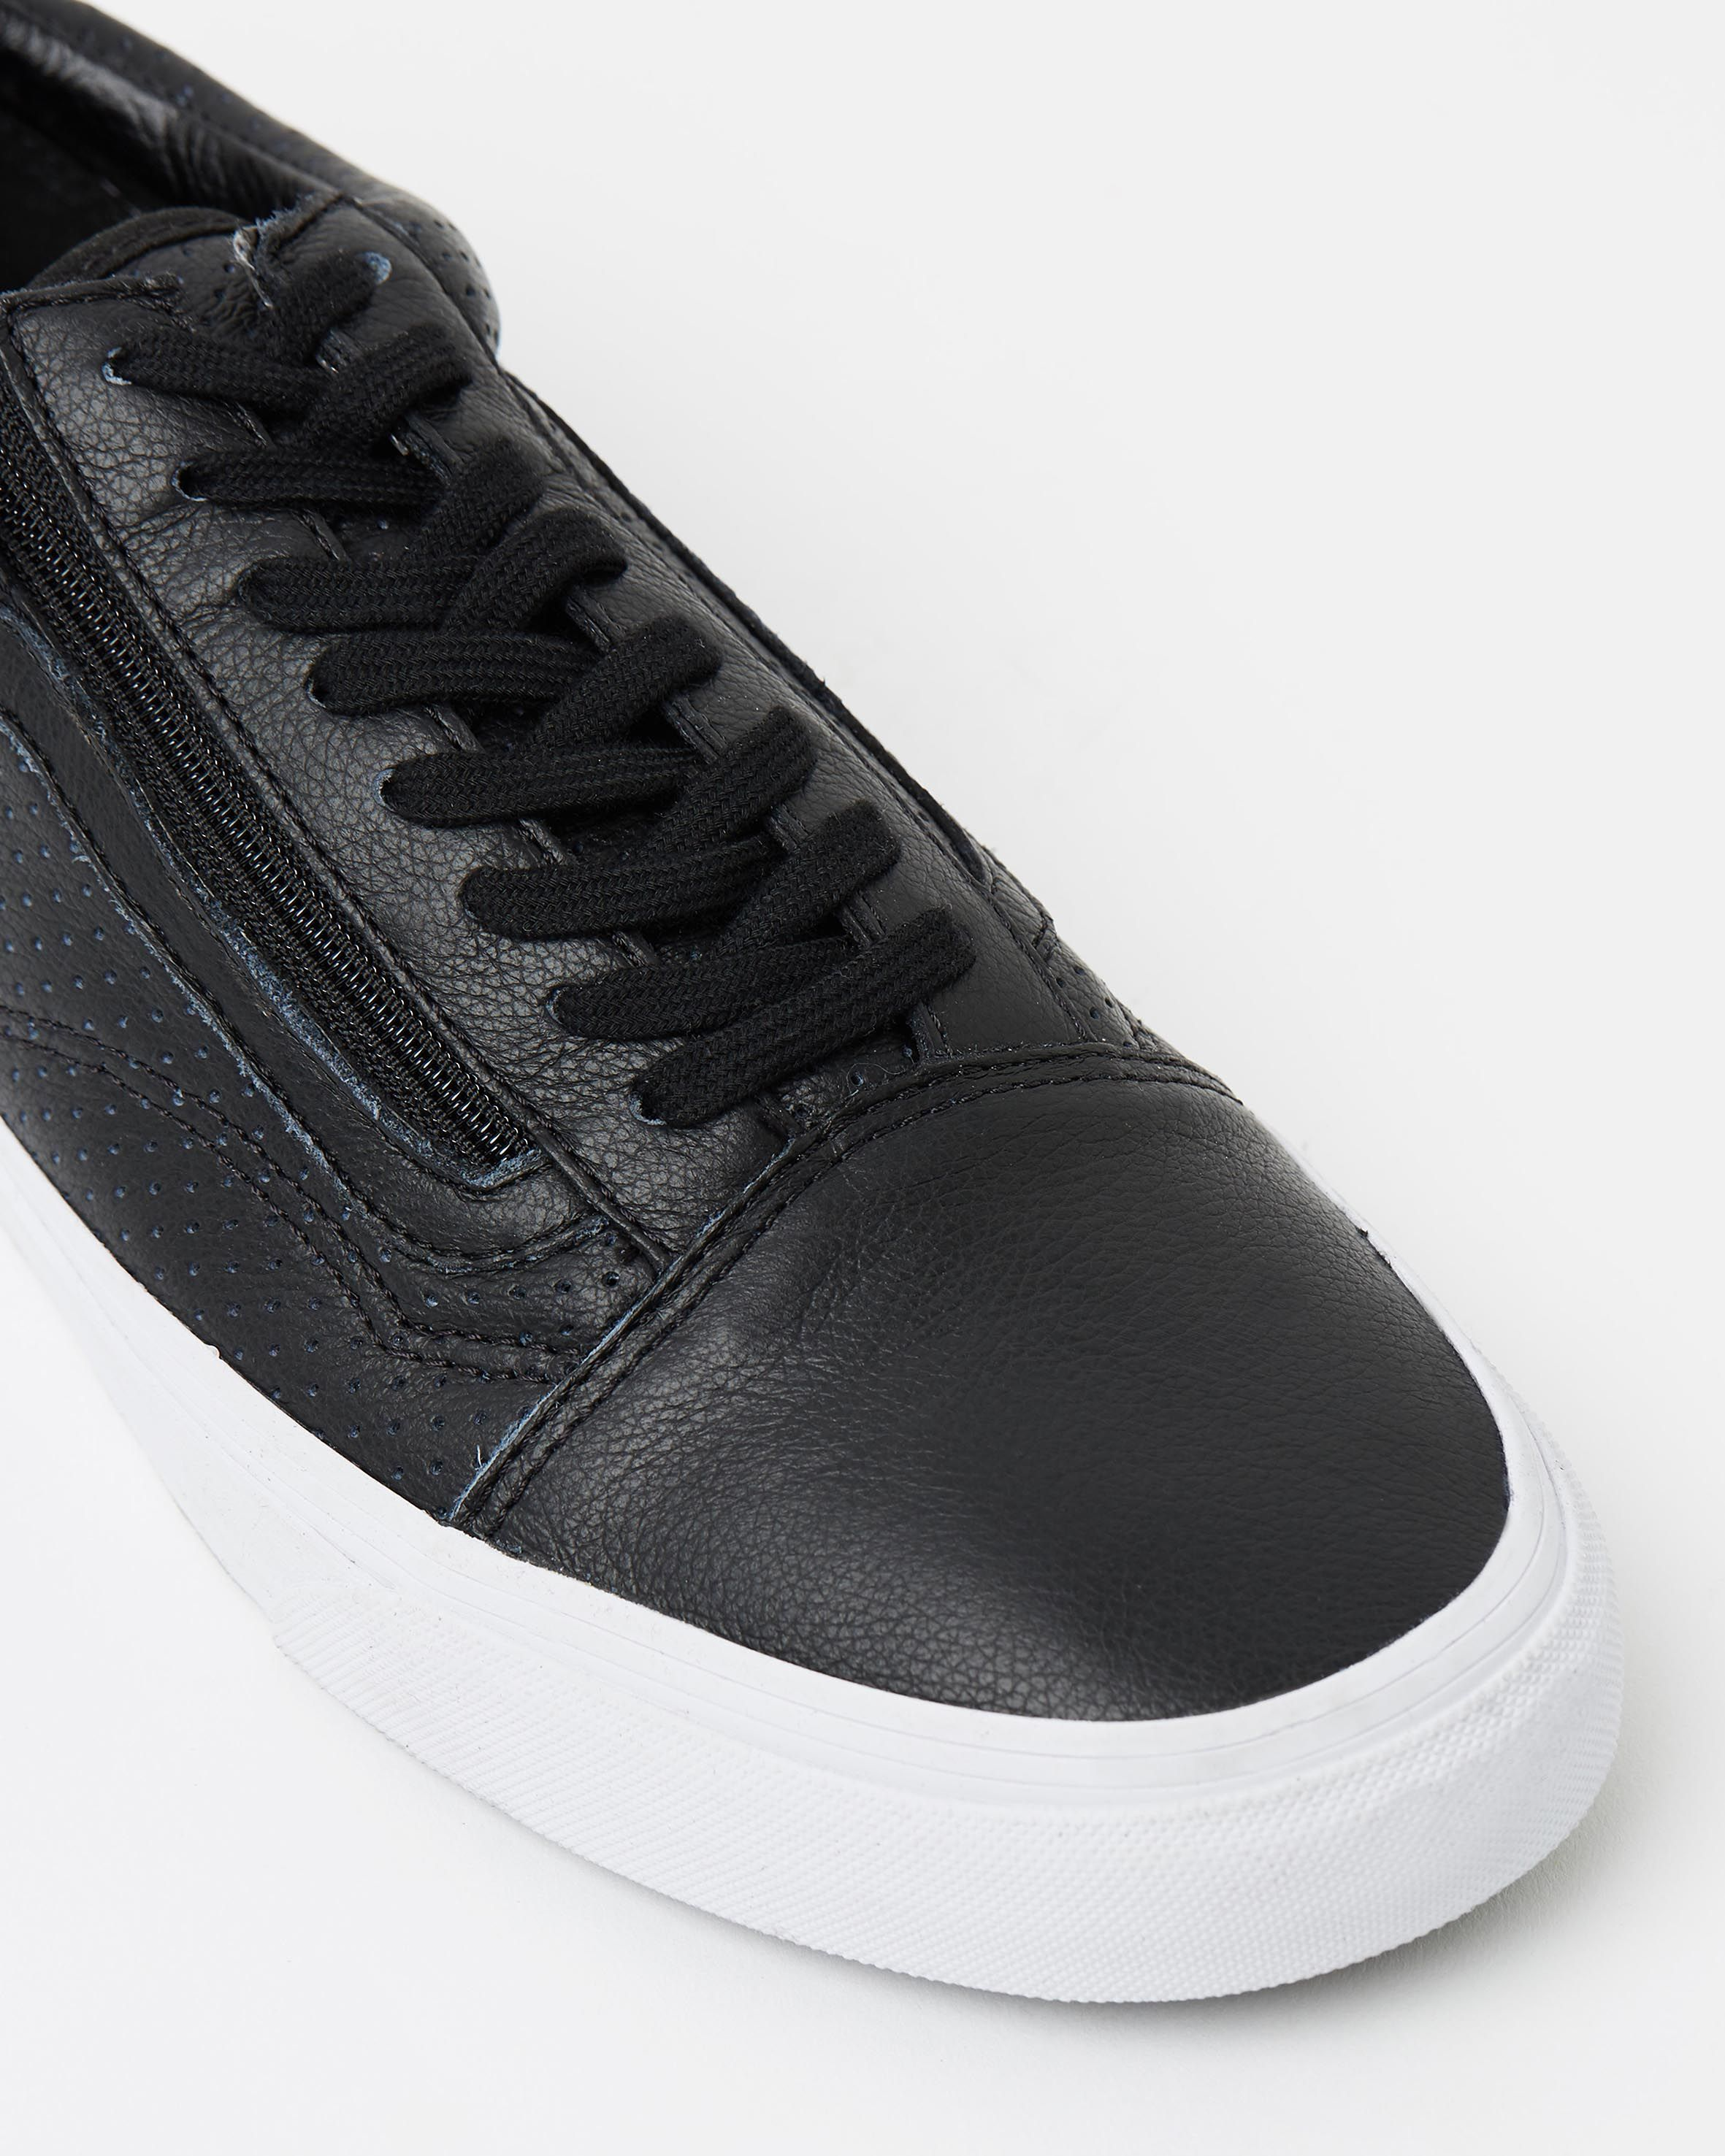 vans old skool australia cheap